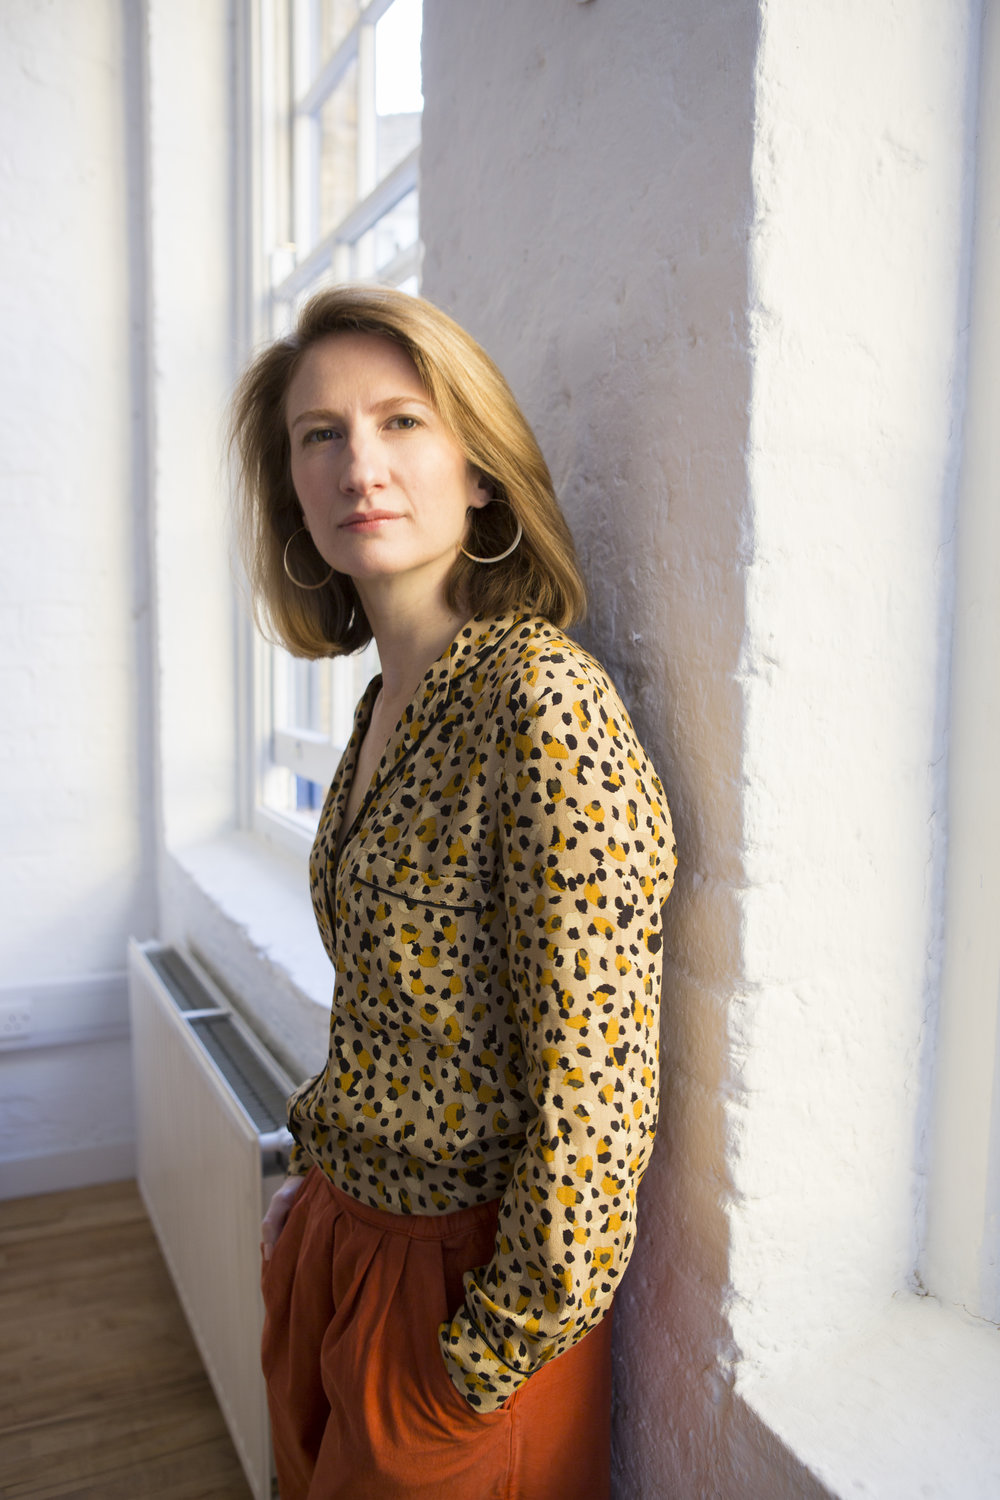 alice salisbury -  Alice has always believed that nothing helps a company see a problem in a new light like the fresh eyes of the consumer.She's put that belief into practice, as both researcher and planner, at the likes of Flamingo, M&C Saatchi and BBH.Frustrated by the increasing gap between company strategy and customer understanding she co-founded Inkling, where she leads the research team.